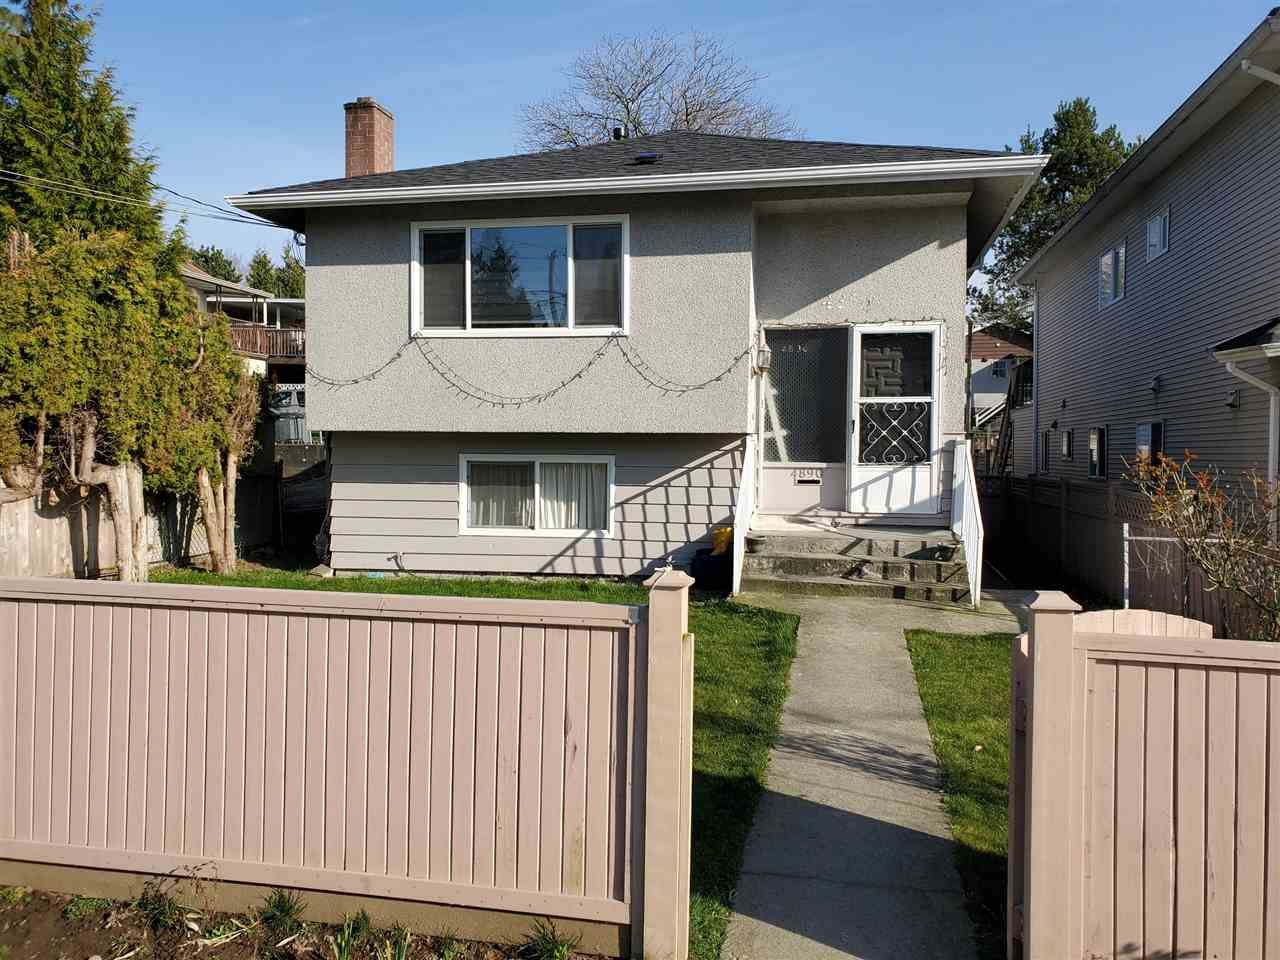 Main Photo: 4890 RUPERT Street in Vancouver: Collingwood VE House for sale (Vancouver East)  : MLS®# R2552133